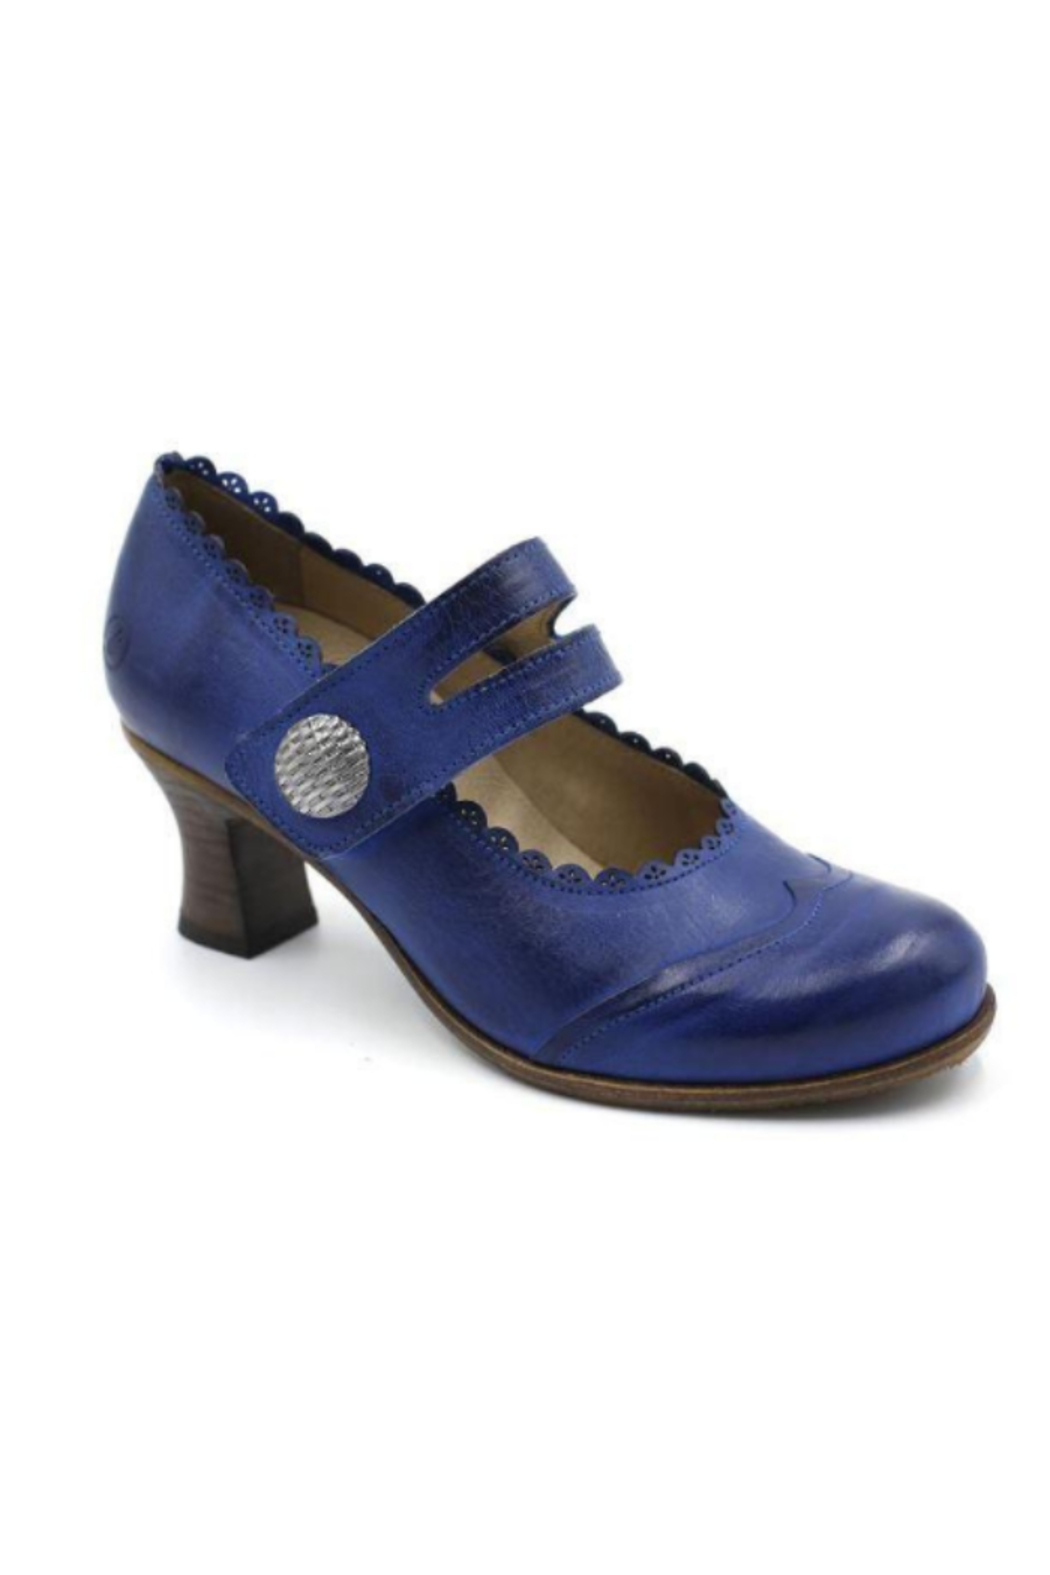 Casta Royal Blue Vintage Design Shoe - Main Image